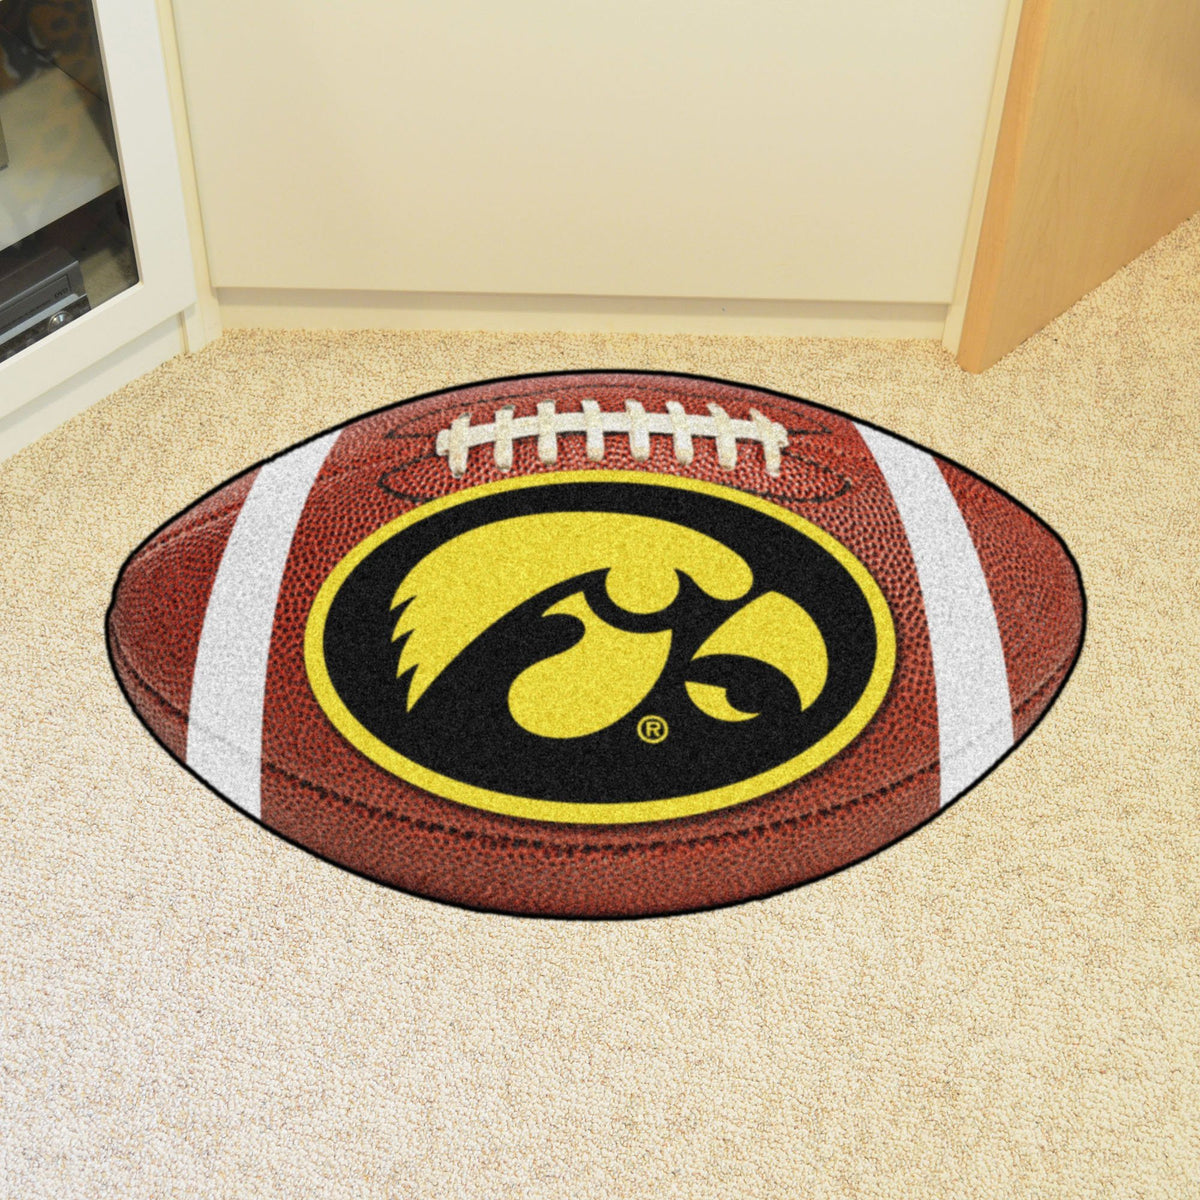 Collegiate - Football Mat: A - K Collegiate Mats, Rectangular Mats, Football Mat, Collegiate, Home Fan Mats Iowa